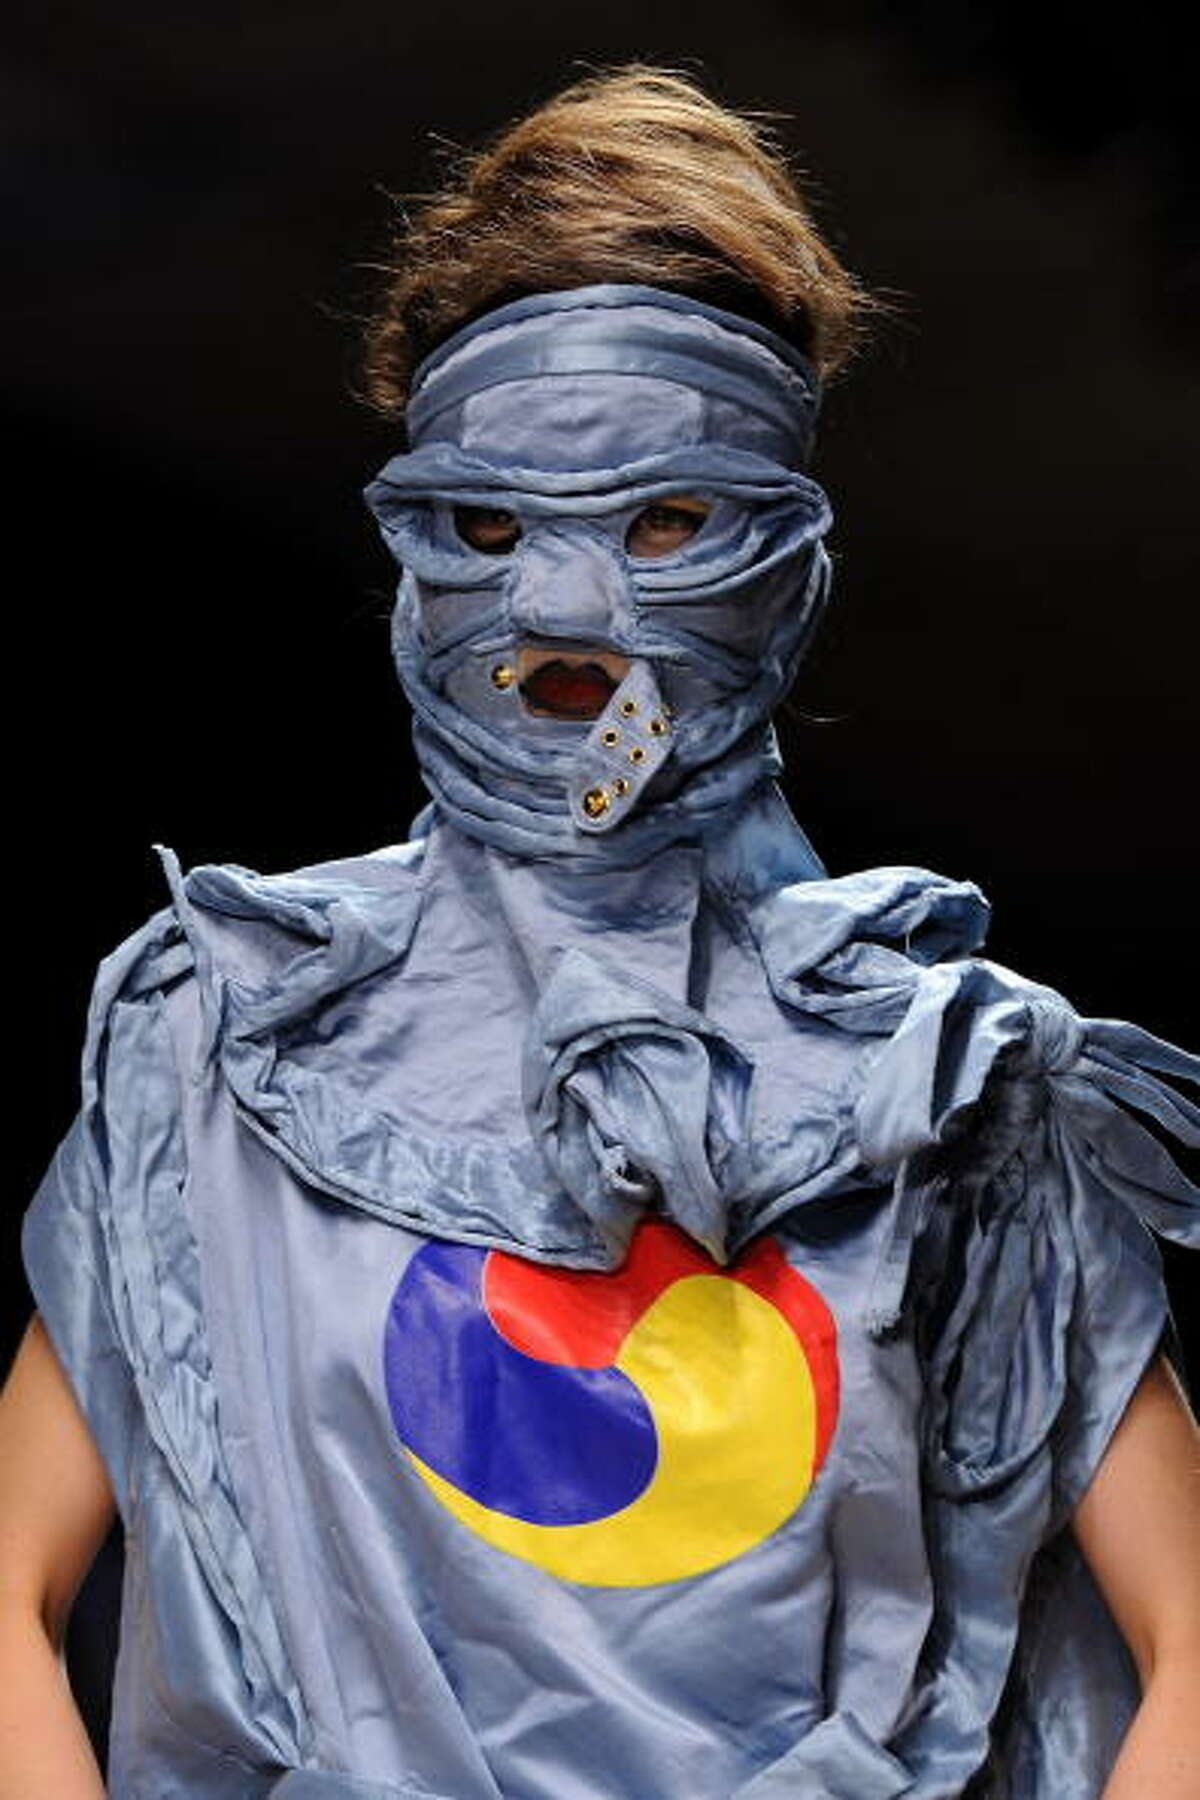 PARIS - OCTOBER 01: A model walks the runway during the Vivienne Westwood Ready to Wear Spring/Summer 2011 show during Paris Fashion Week on October 1, 2010 in Paris, France. (Photo by Pascal Le Segretain/Getty Images)